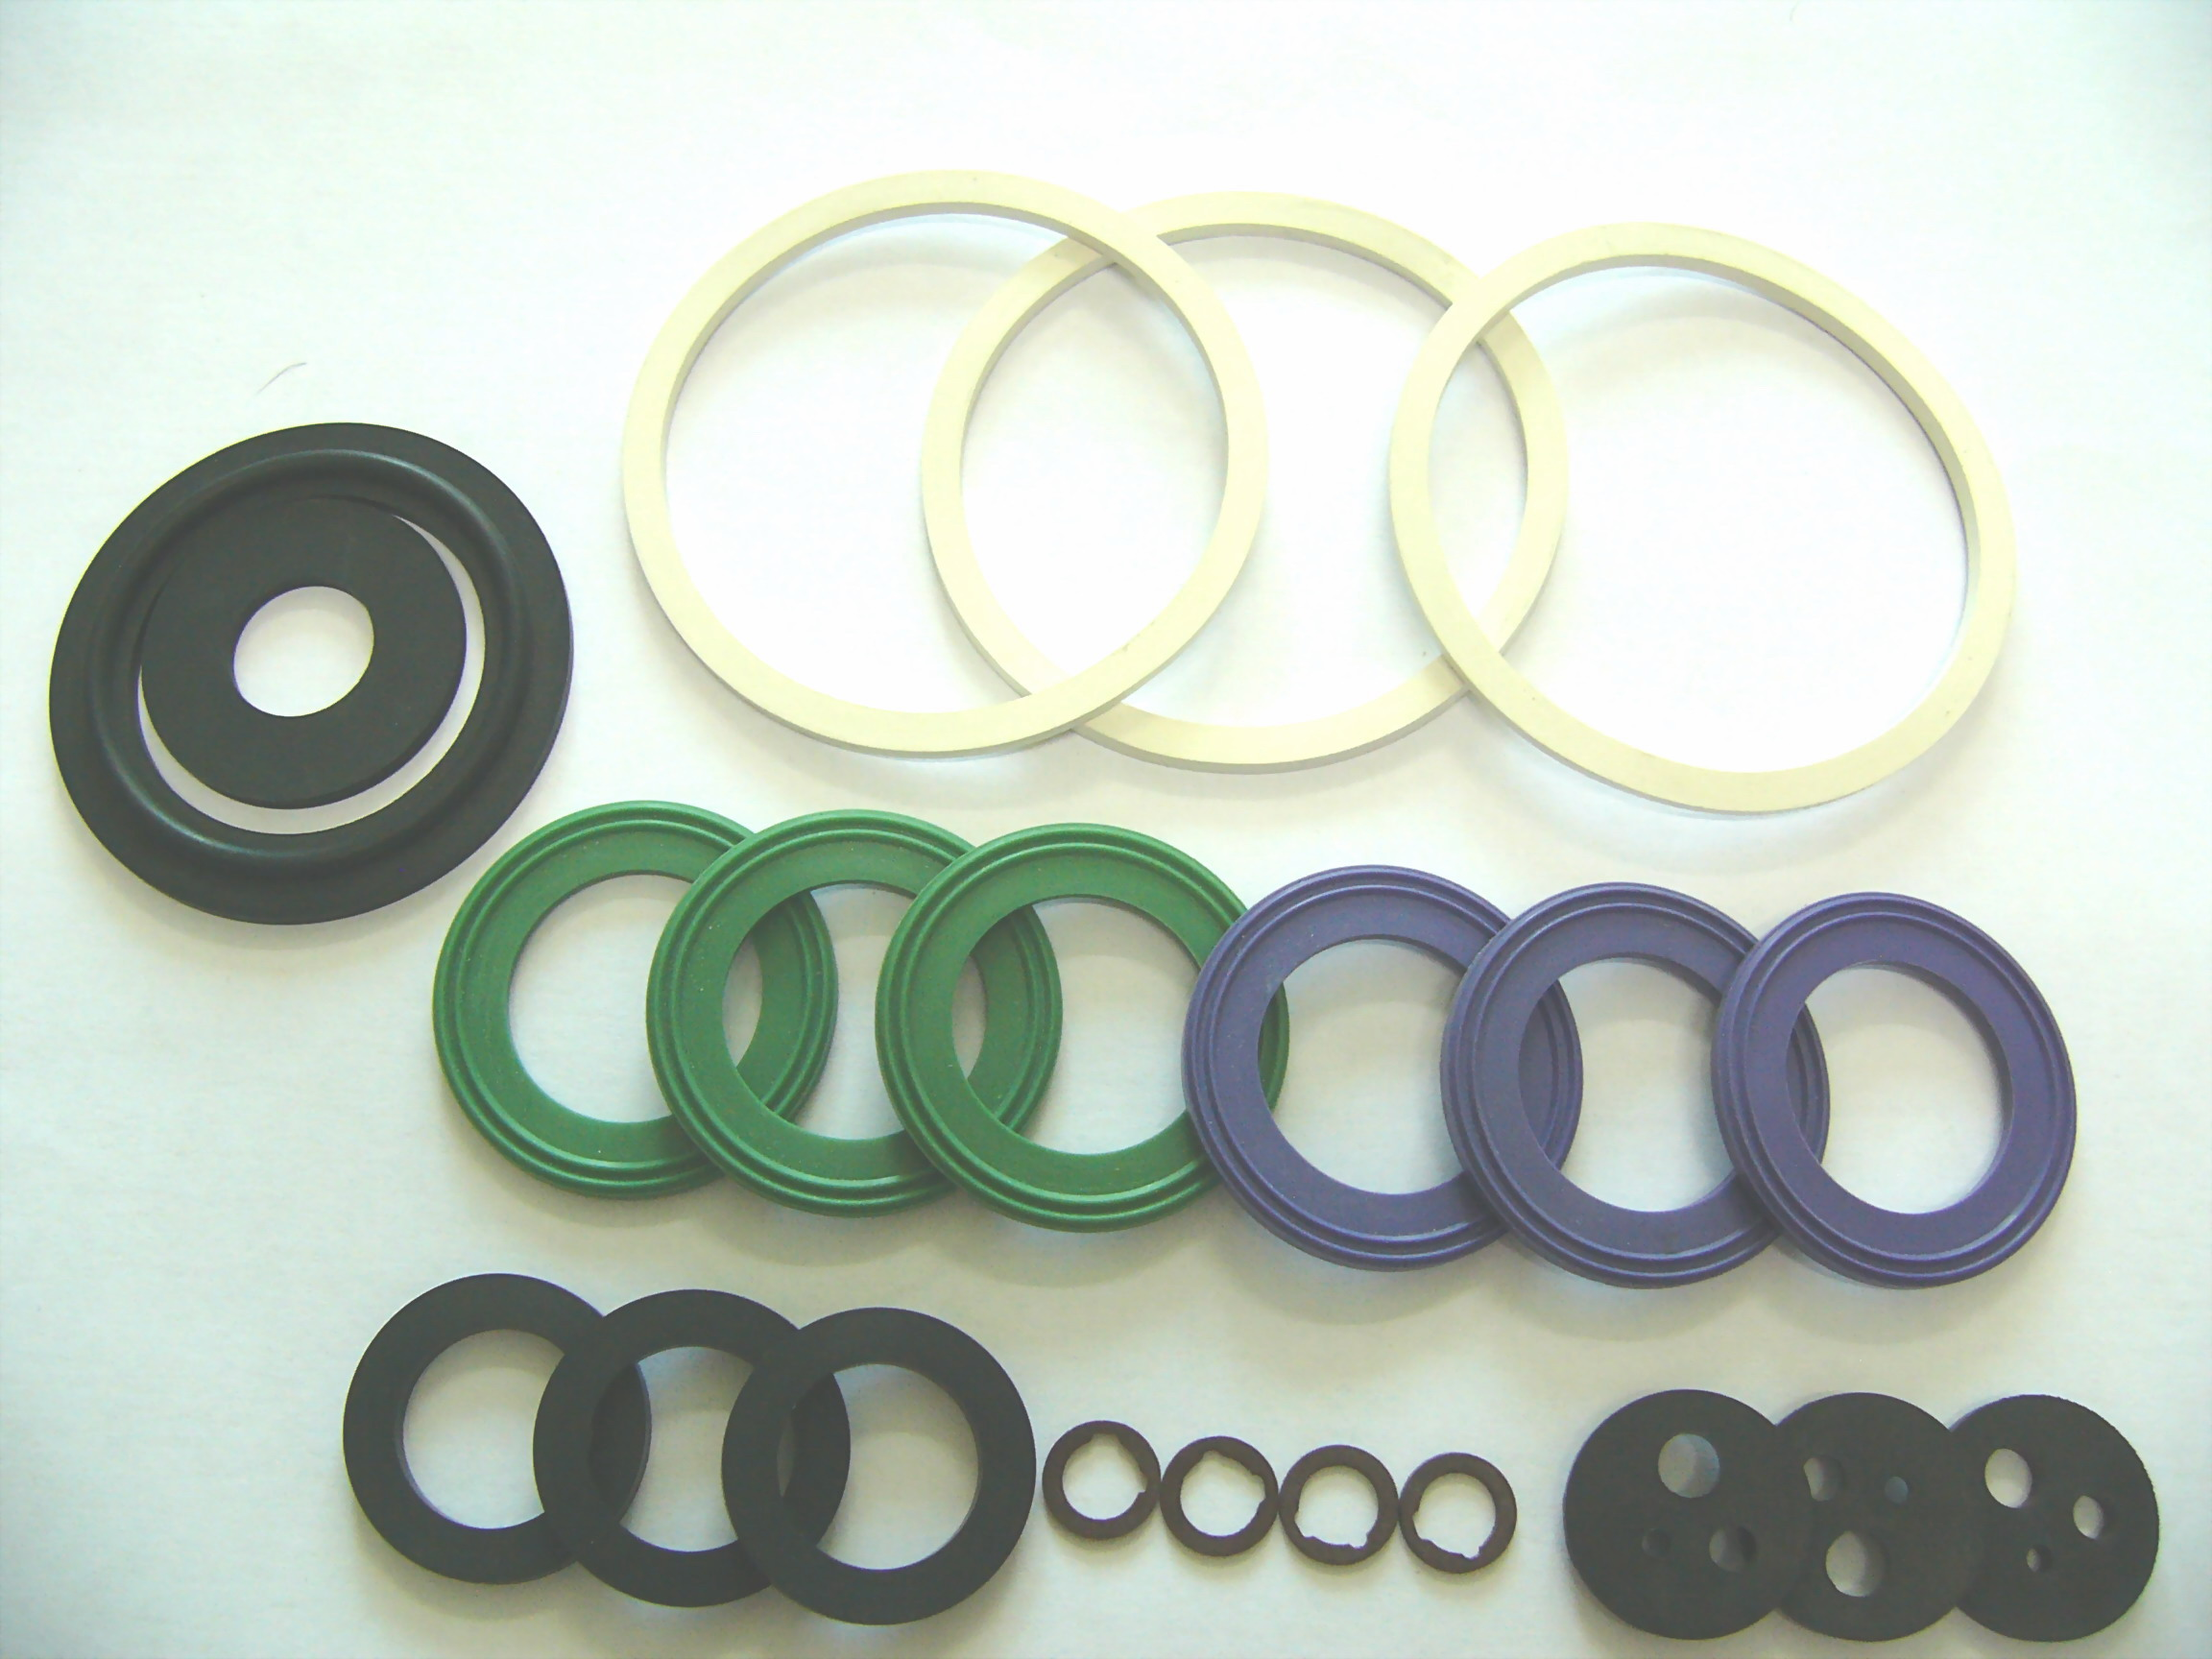 Any shape of molded gaskets is available from New Resources, like gasket strip, sanitary gasket, spiral gaskets and so on, made of variety compound material as below: